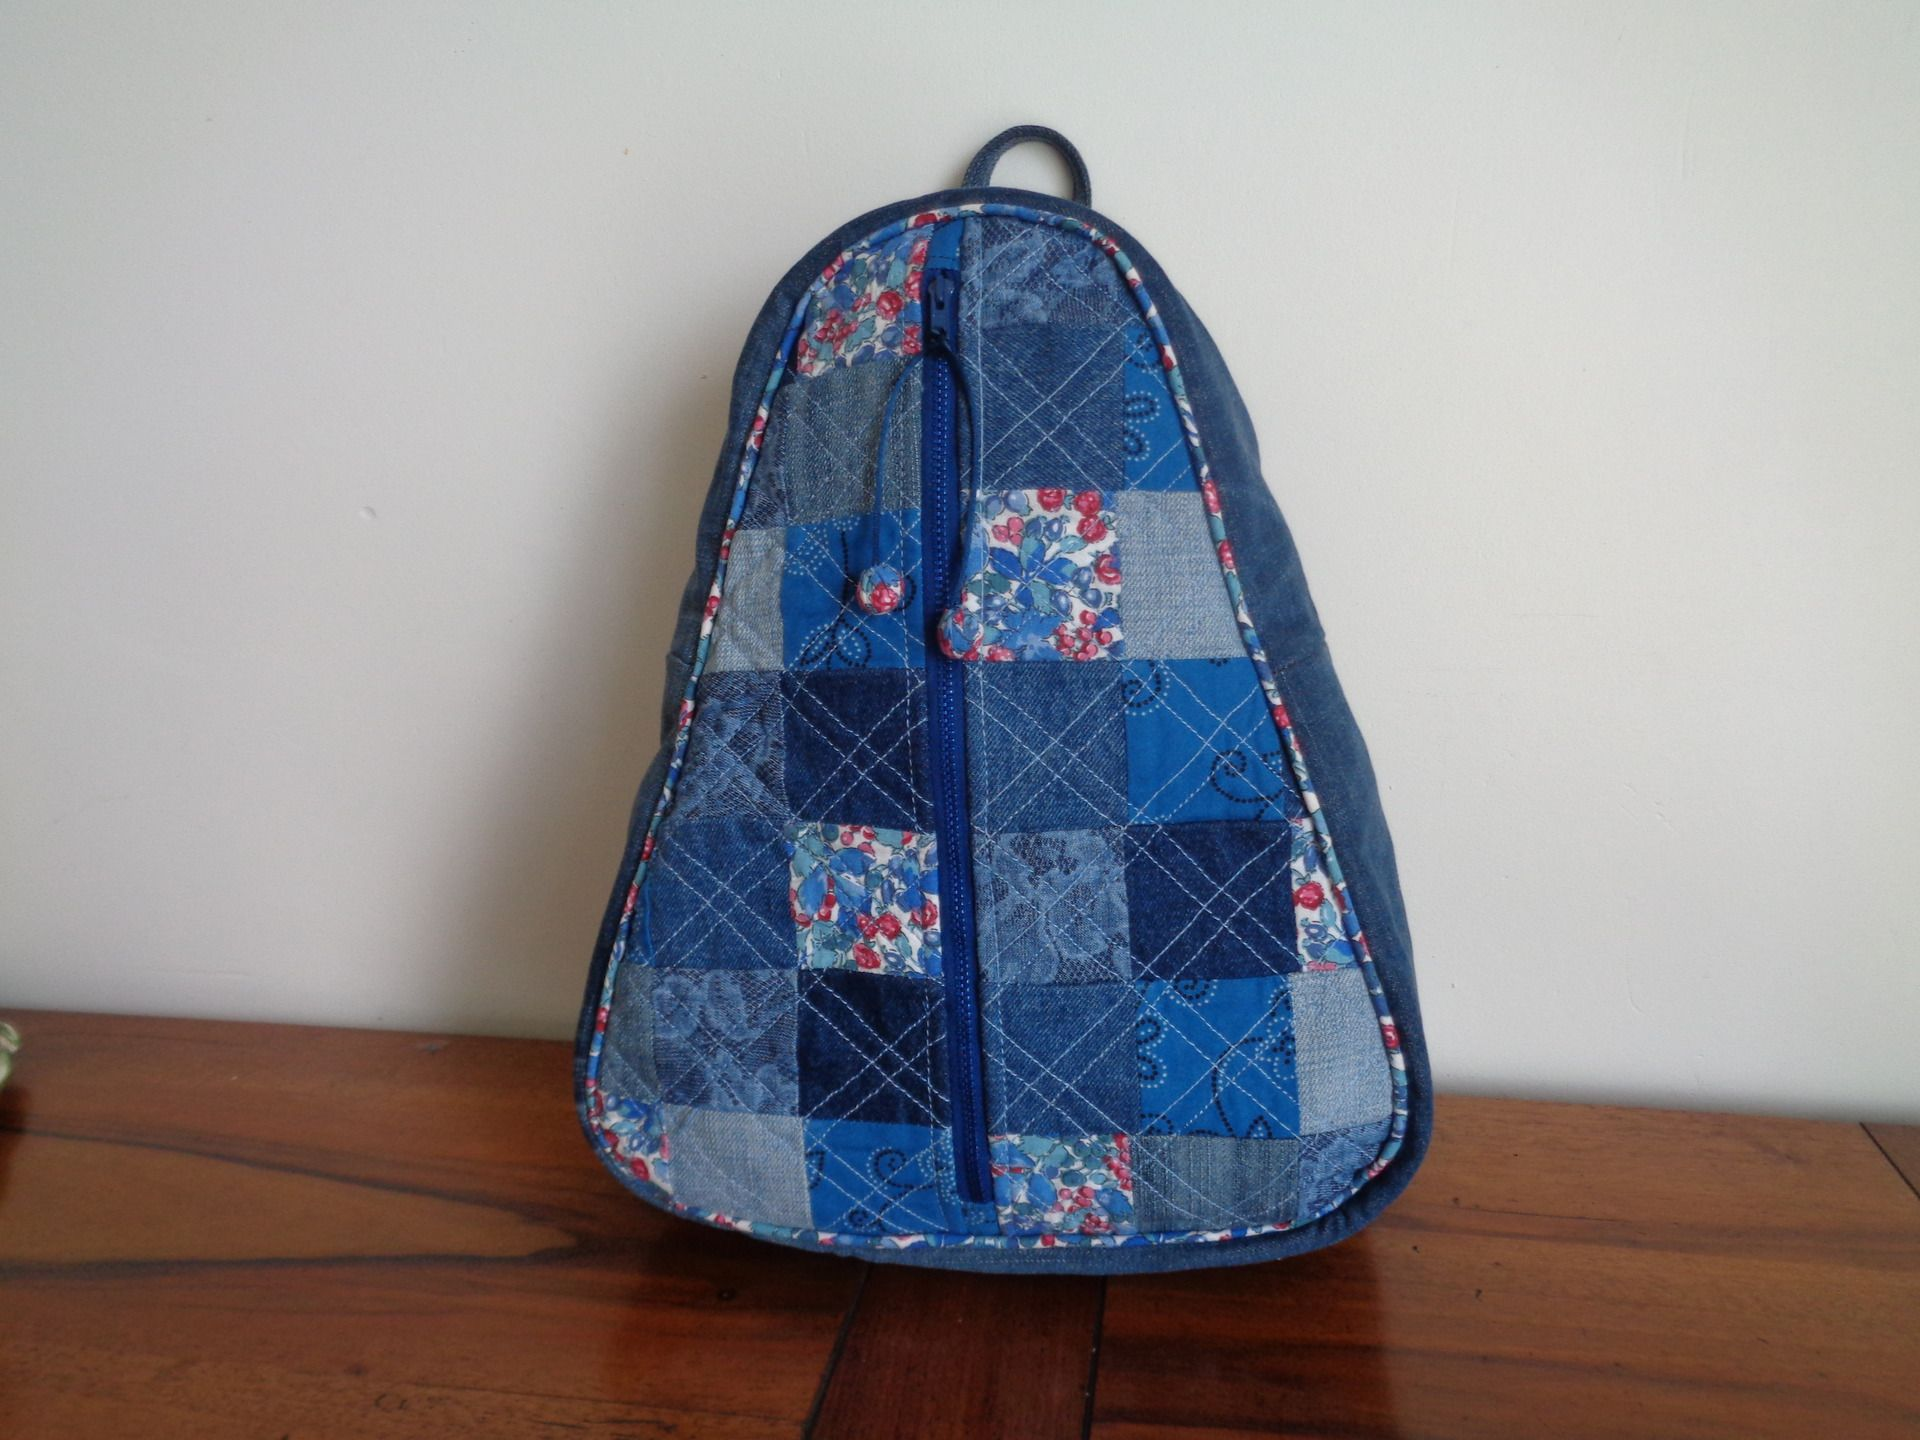 sac a dos en toile jean recyclee forme triangle patchwork toile jeans pinterest toile. Black Bedroom Furniture Sets. Home Design Ideas